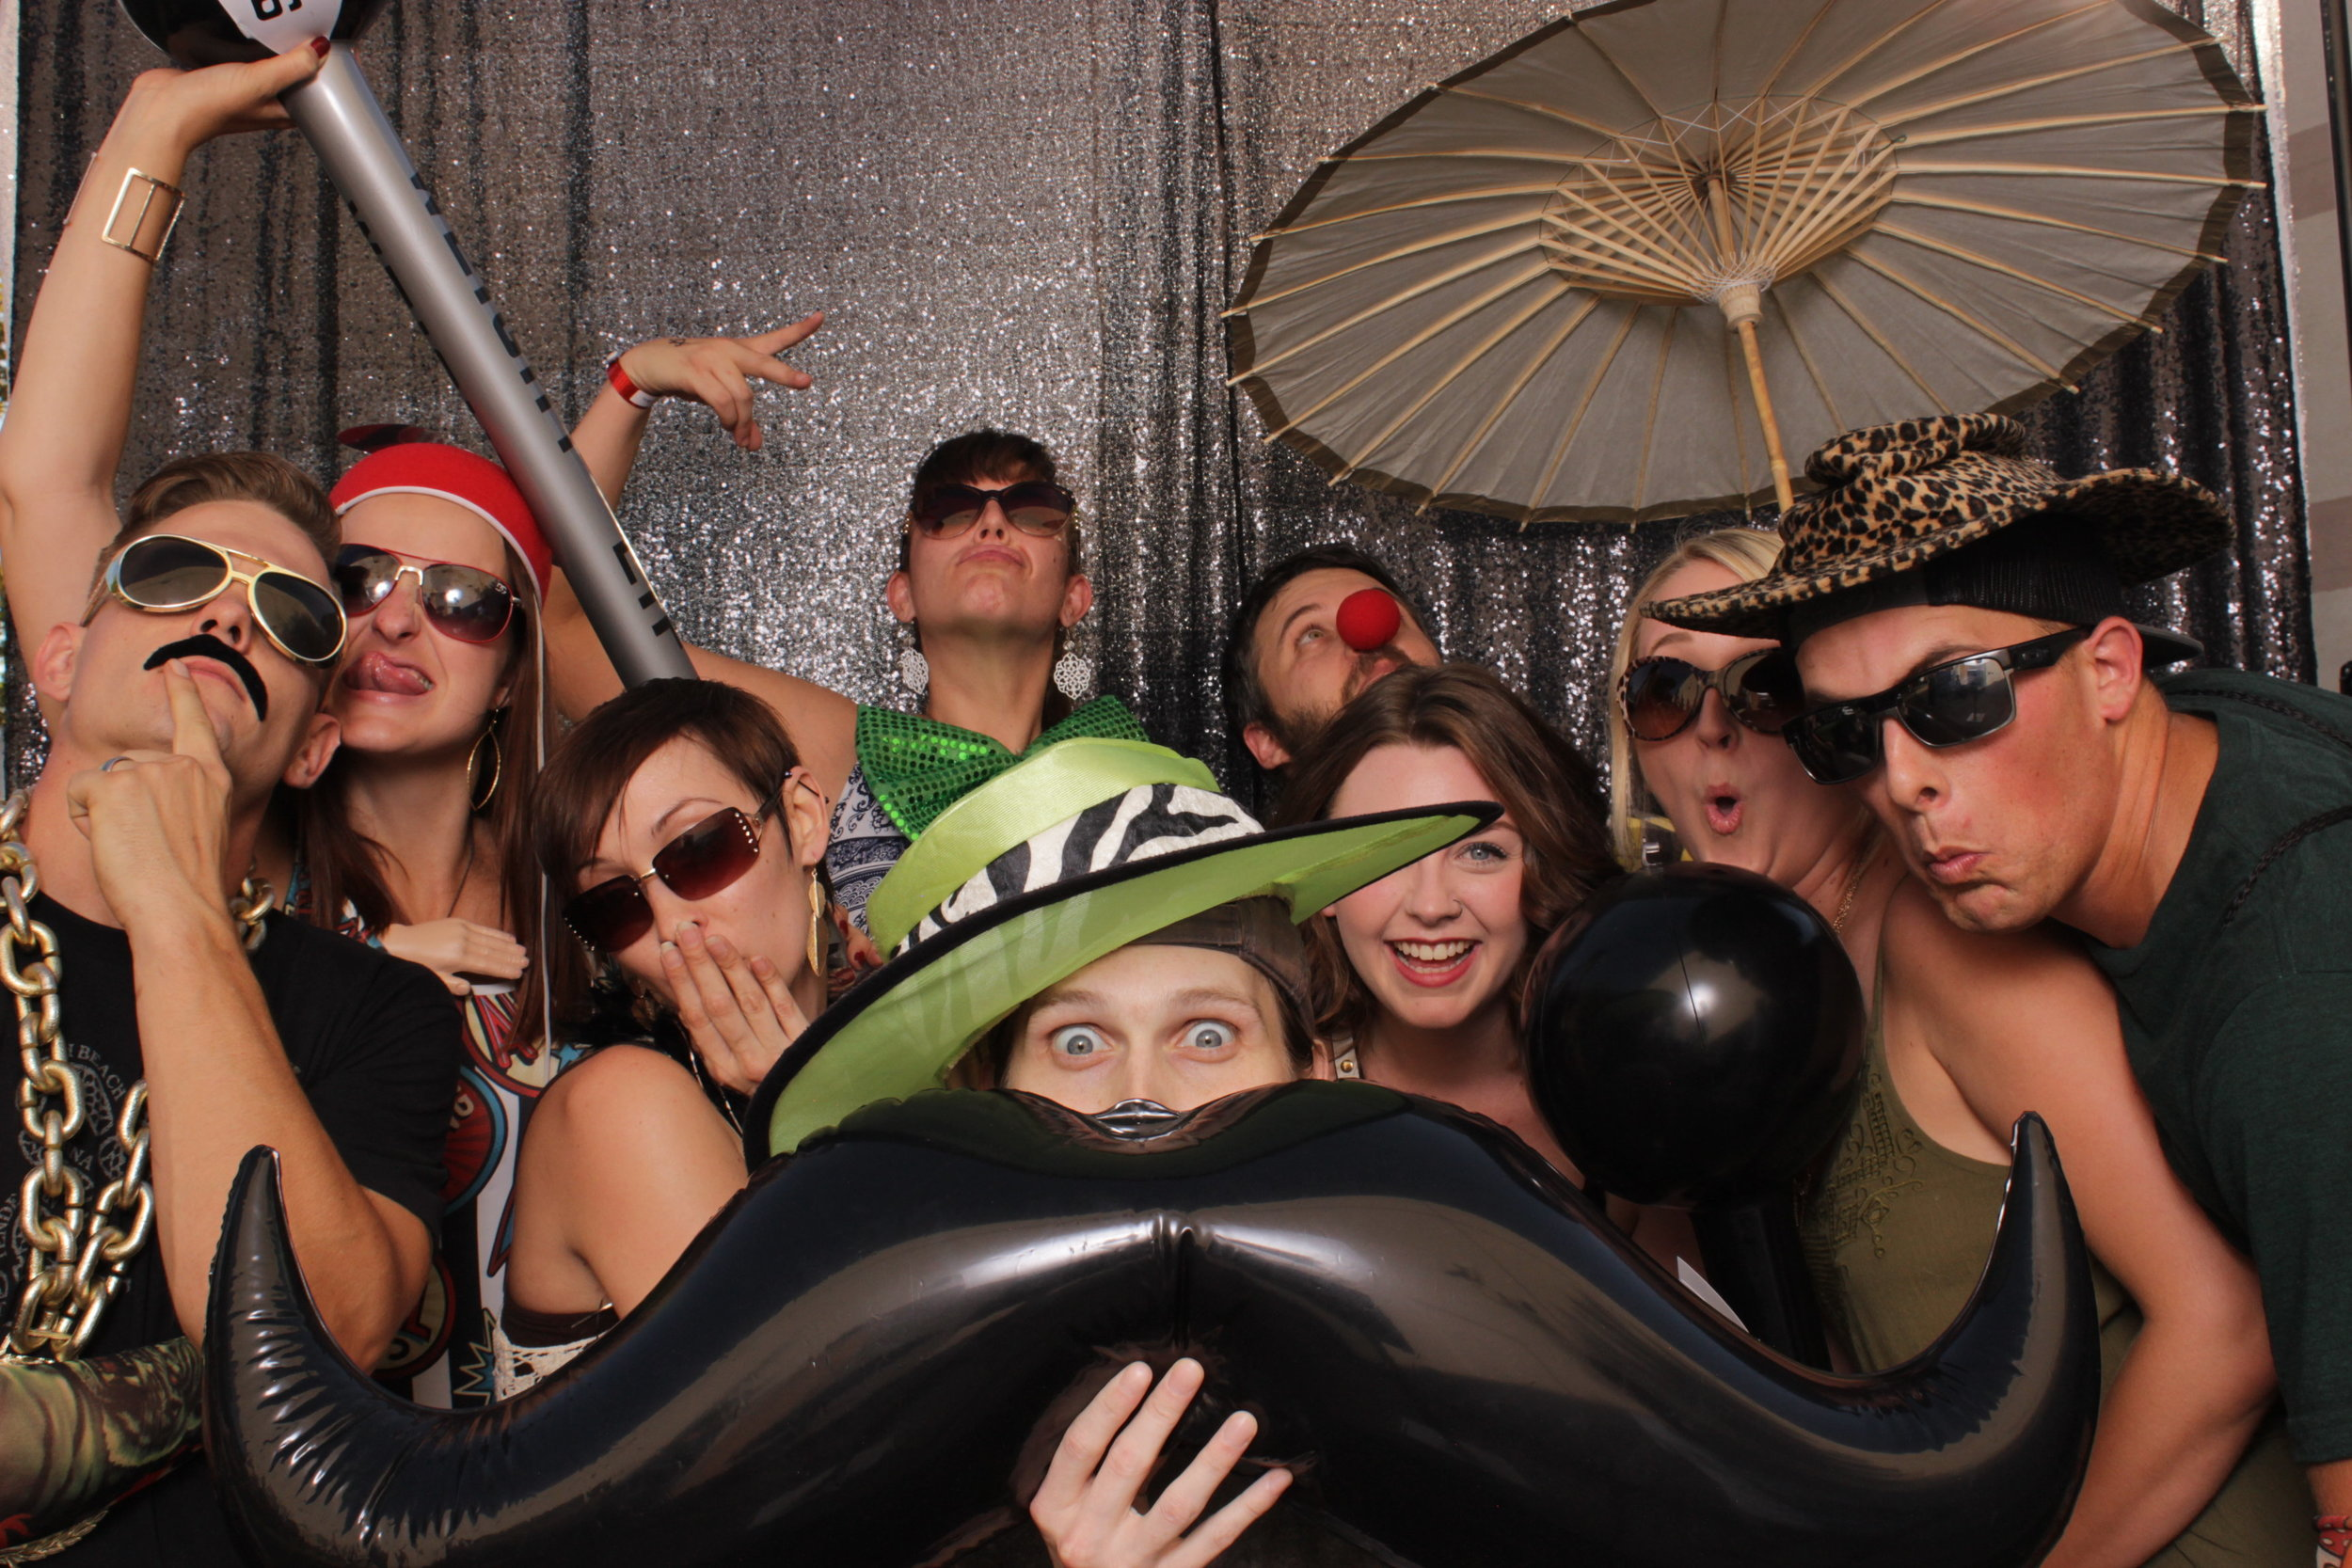 build-corporate-party-photo-booth-rental-umbrella-party